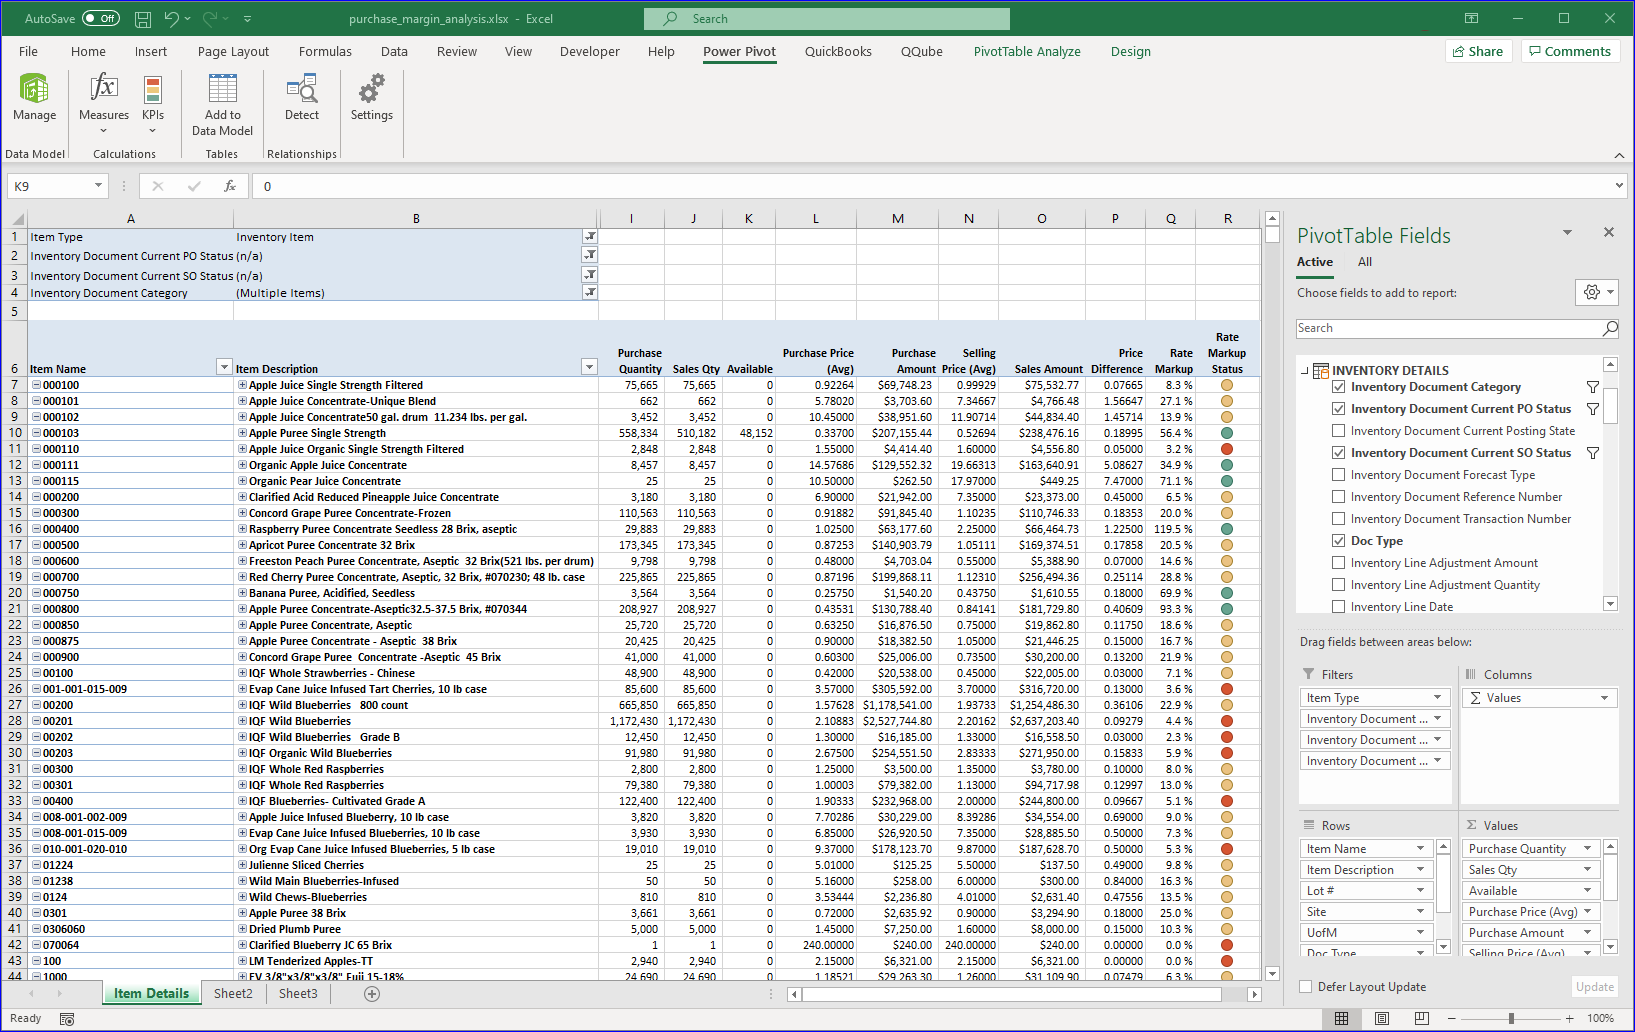 Excel Power Pivot example using QuickBooks purchasing report data